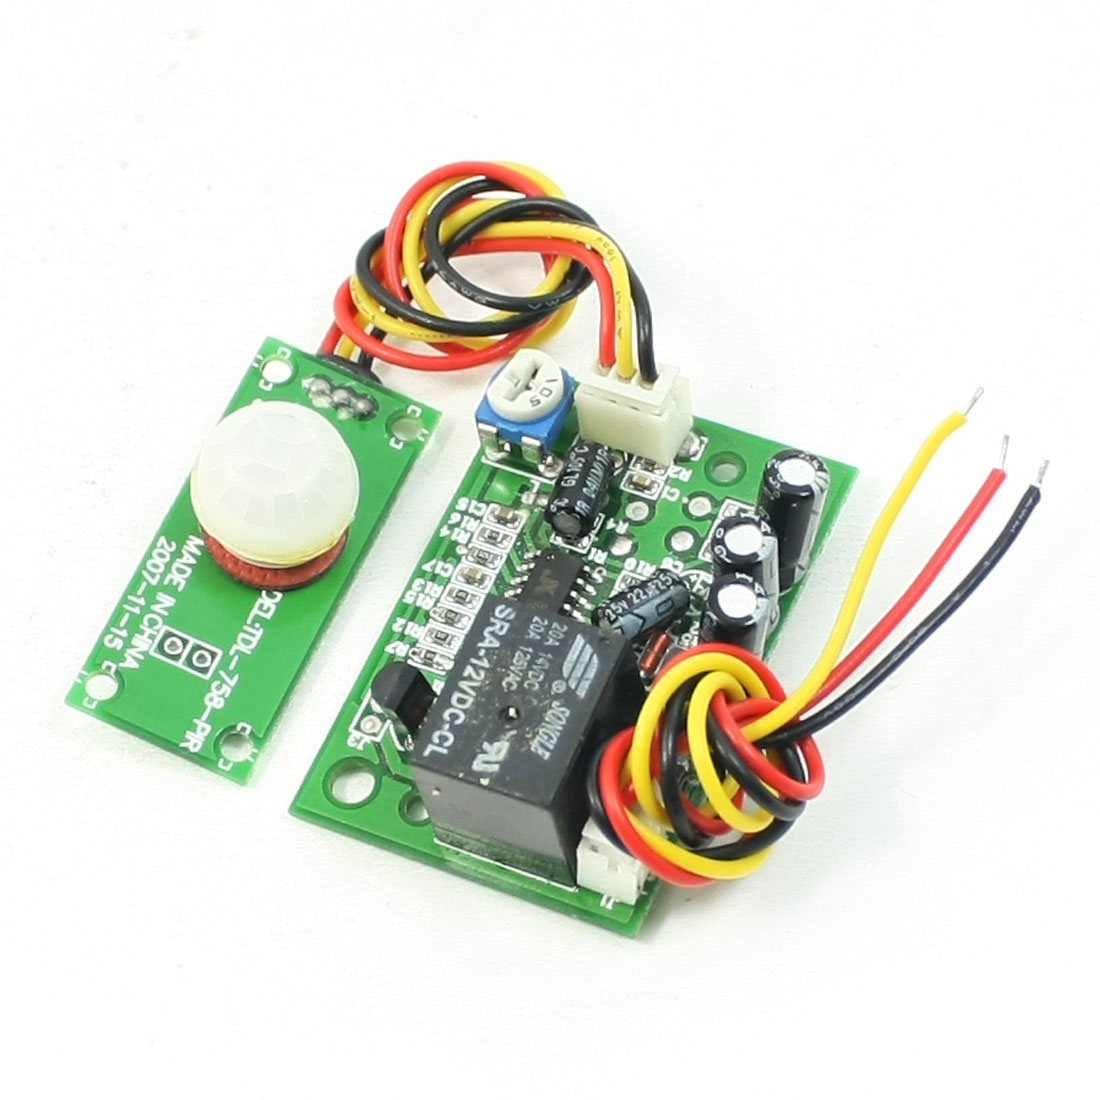 DC12V TDL-758-Main Model 6 Wires Connector Infrared Sensor Module